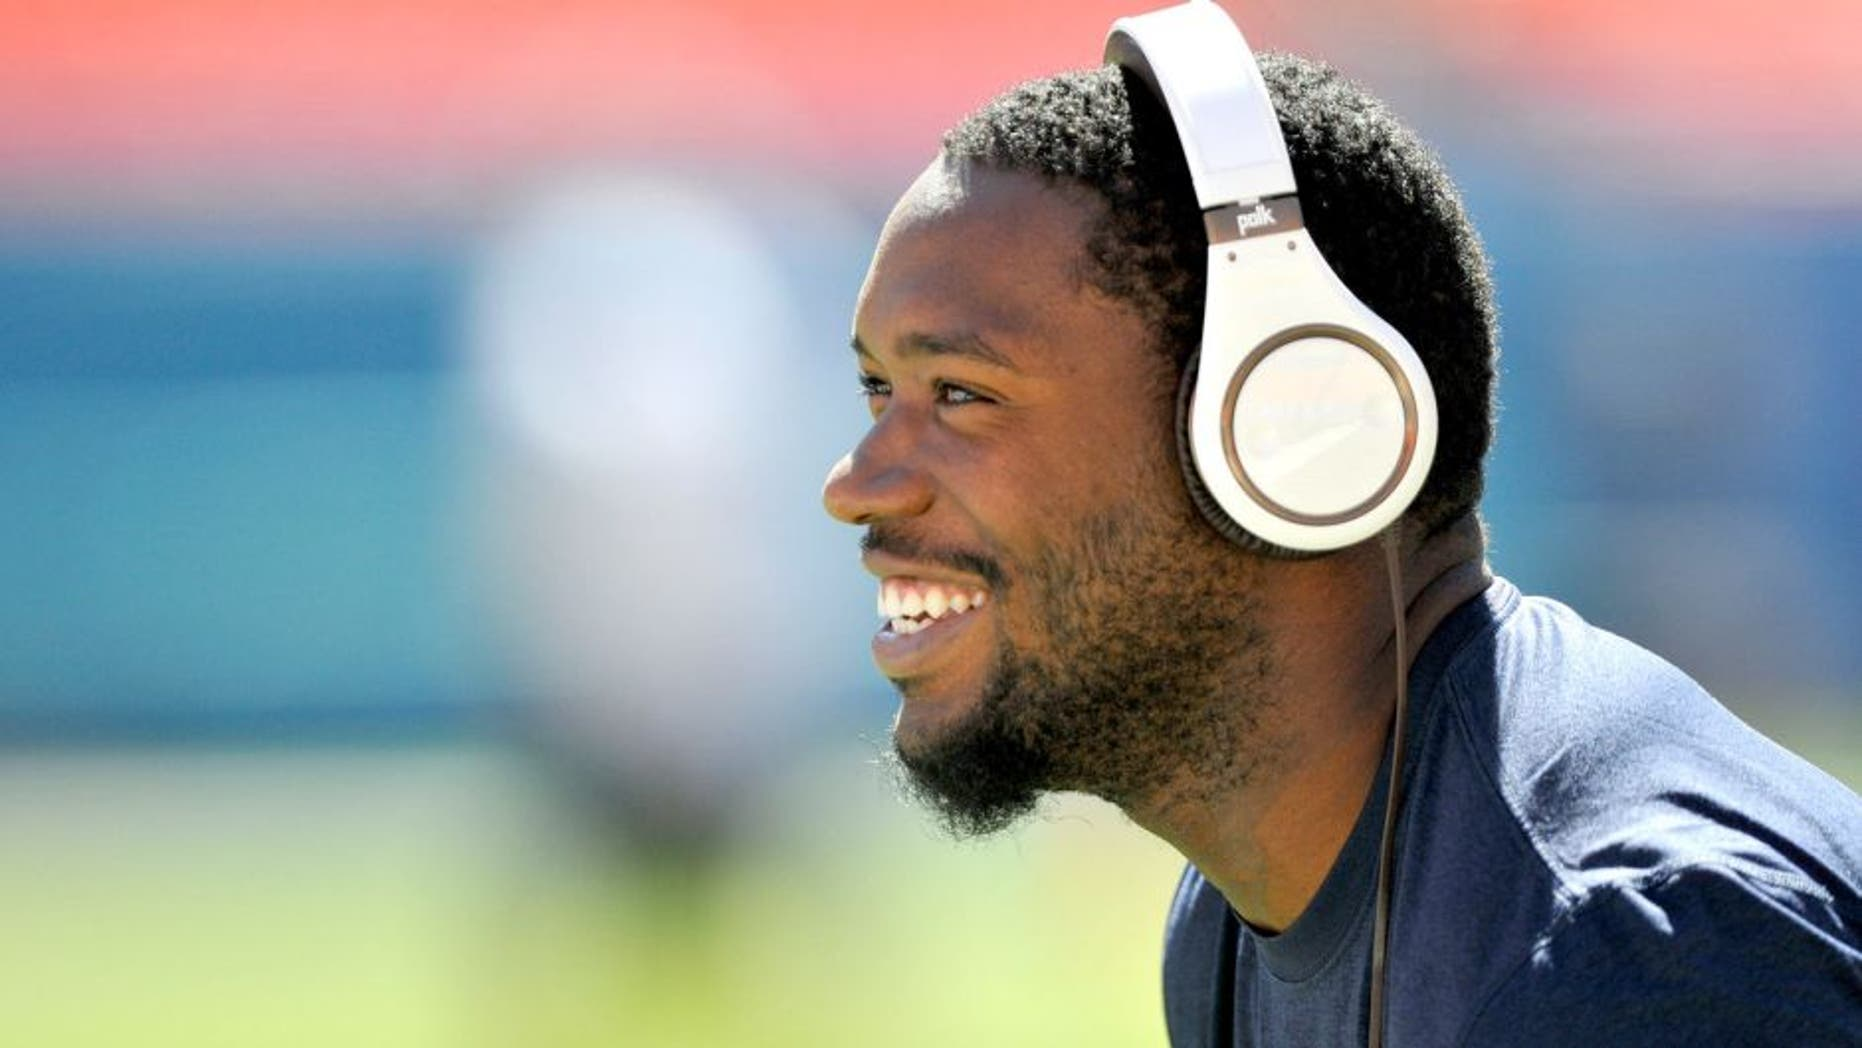 Nov 2, 2014; Miami Gardens, FL, USA; San Diego Chargers tight end Ladarius Green (89) looks on prior to the game against the Miami Dolphins at Sun Life Stadium. Mandatory Credit: Brad Barr-USA TODAY Sports